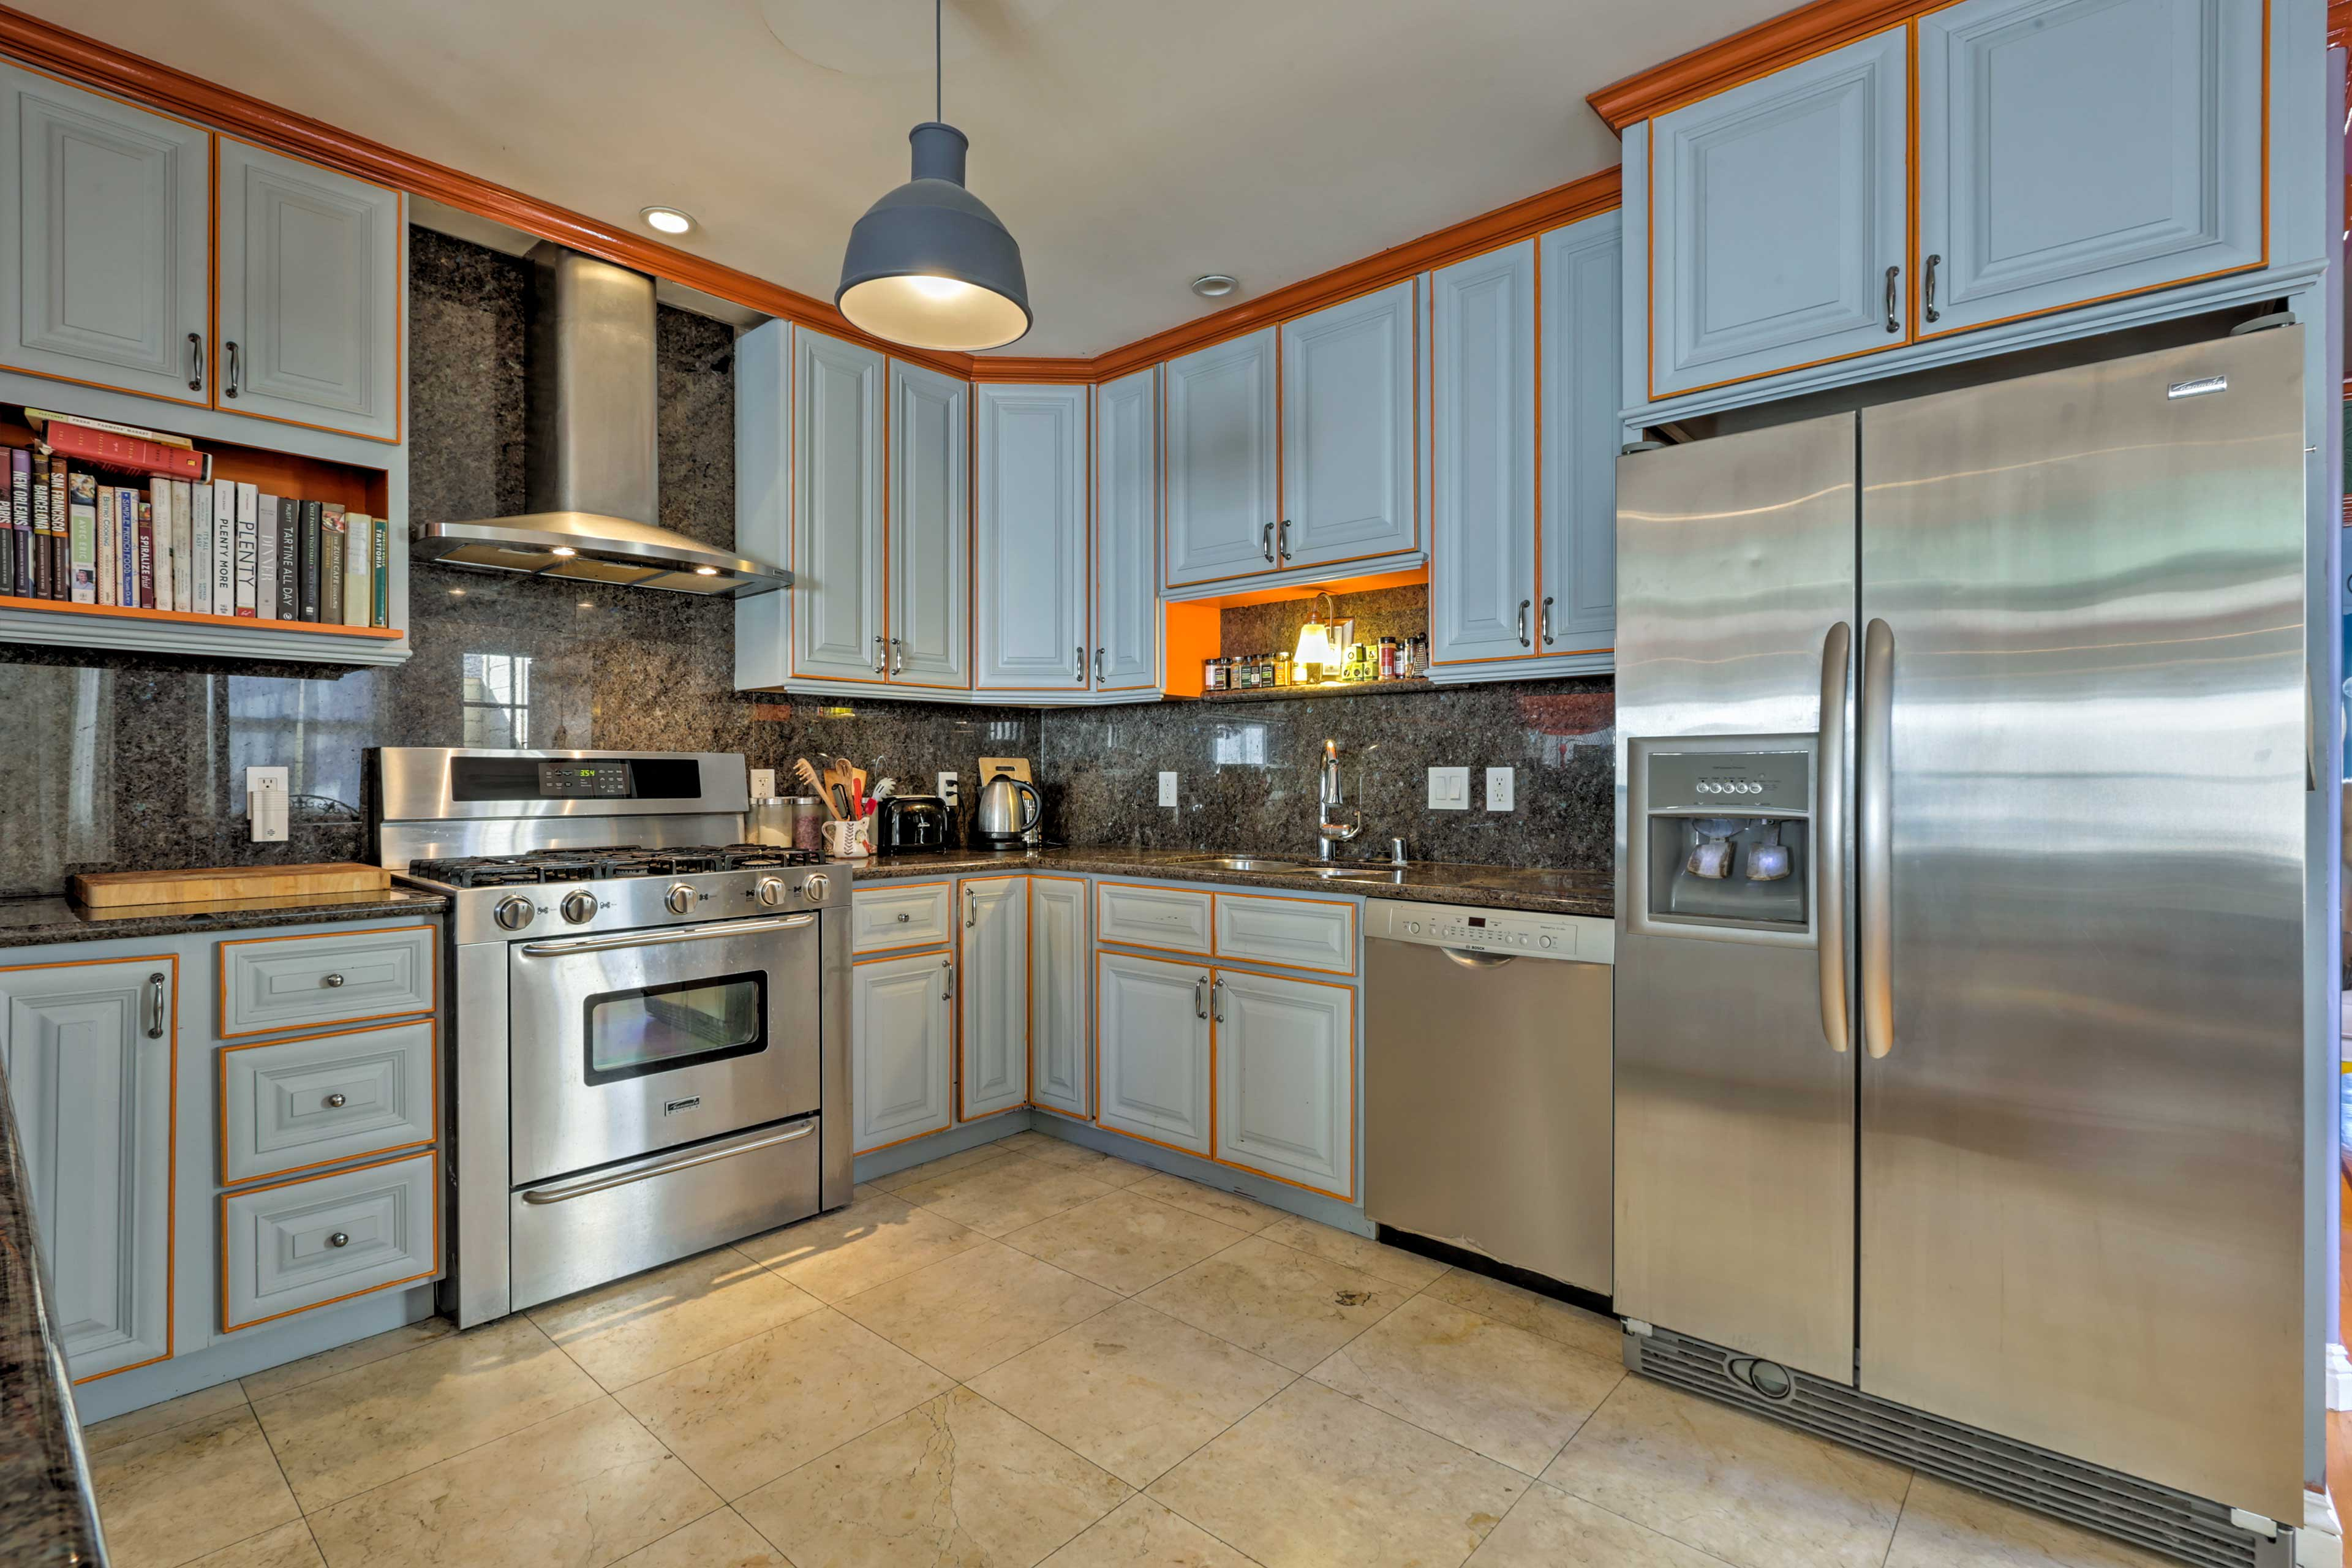 The kitchen is highlighted by stainless steel appliances and granite surfaces.